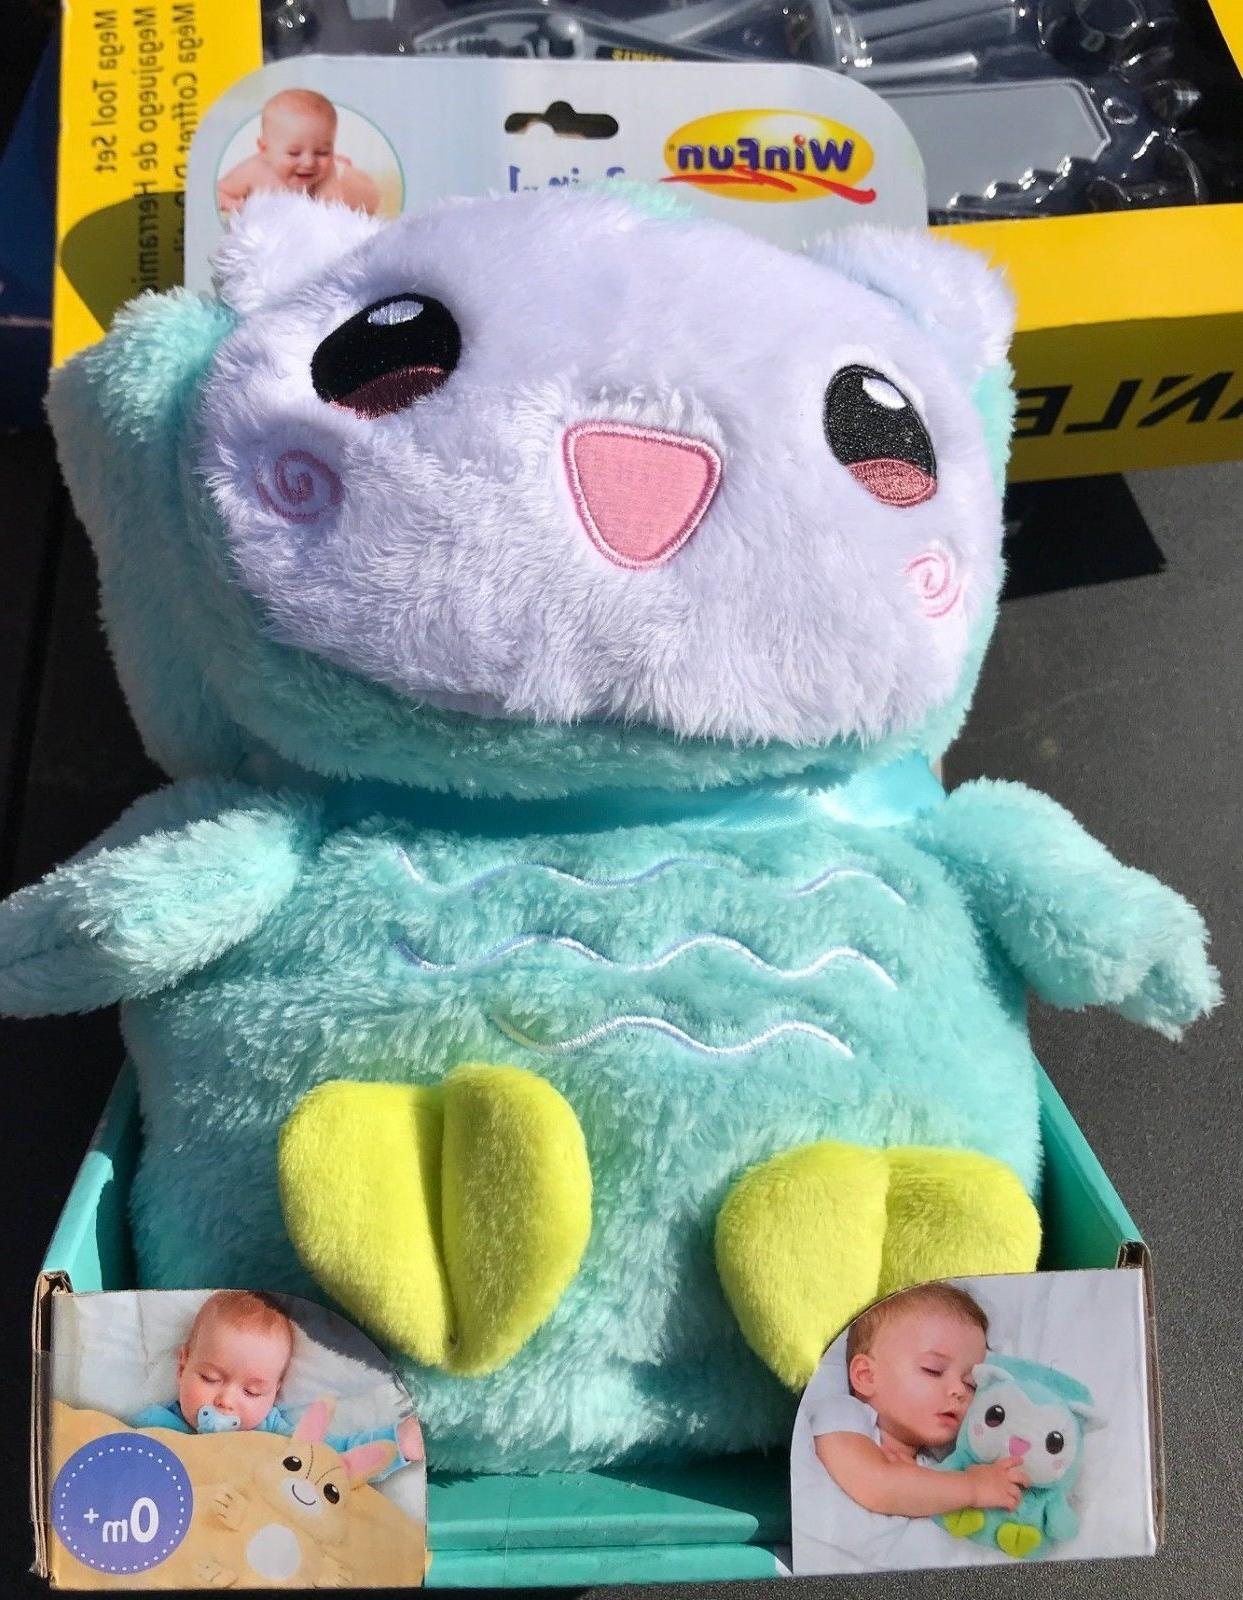 WIN FUN 3 IN 1 BABY PAL BLANKET OWL PLUSH TOY SOFT BLANKET a